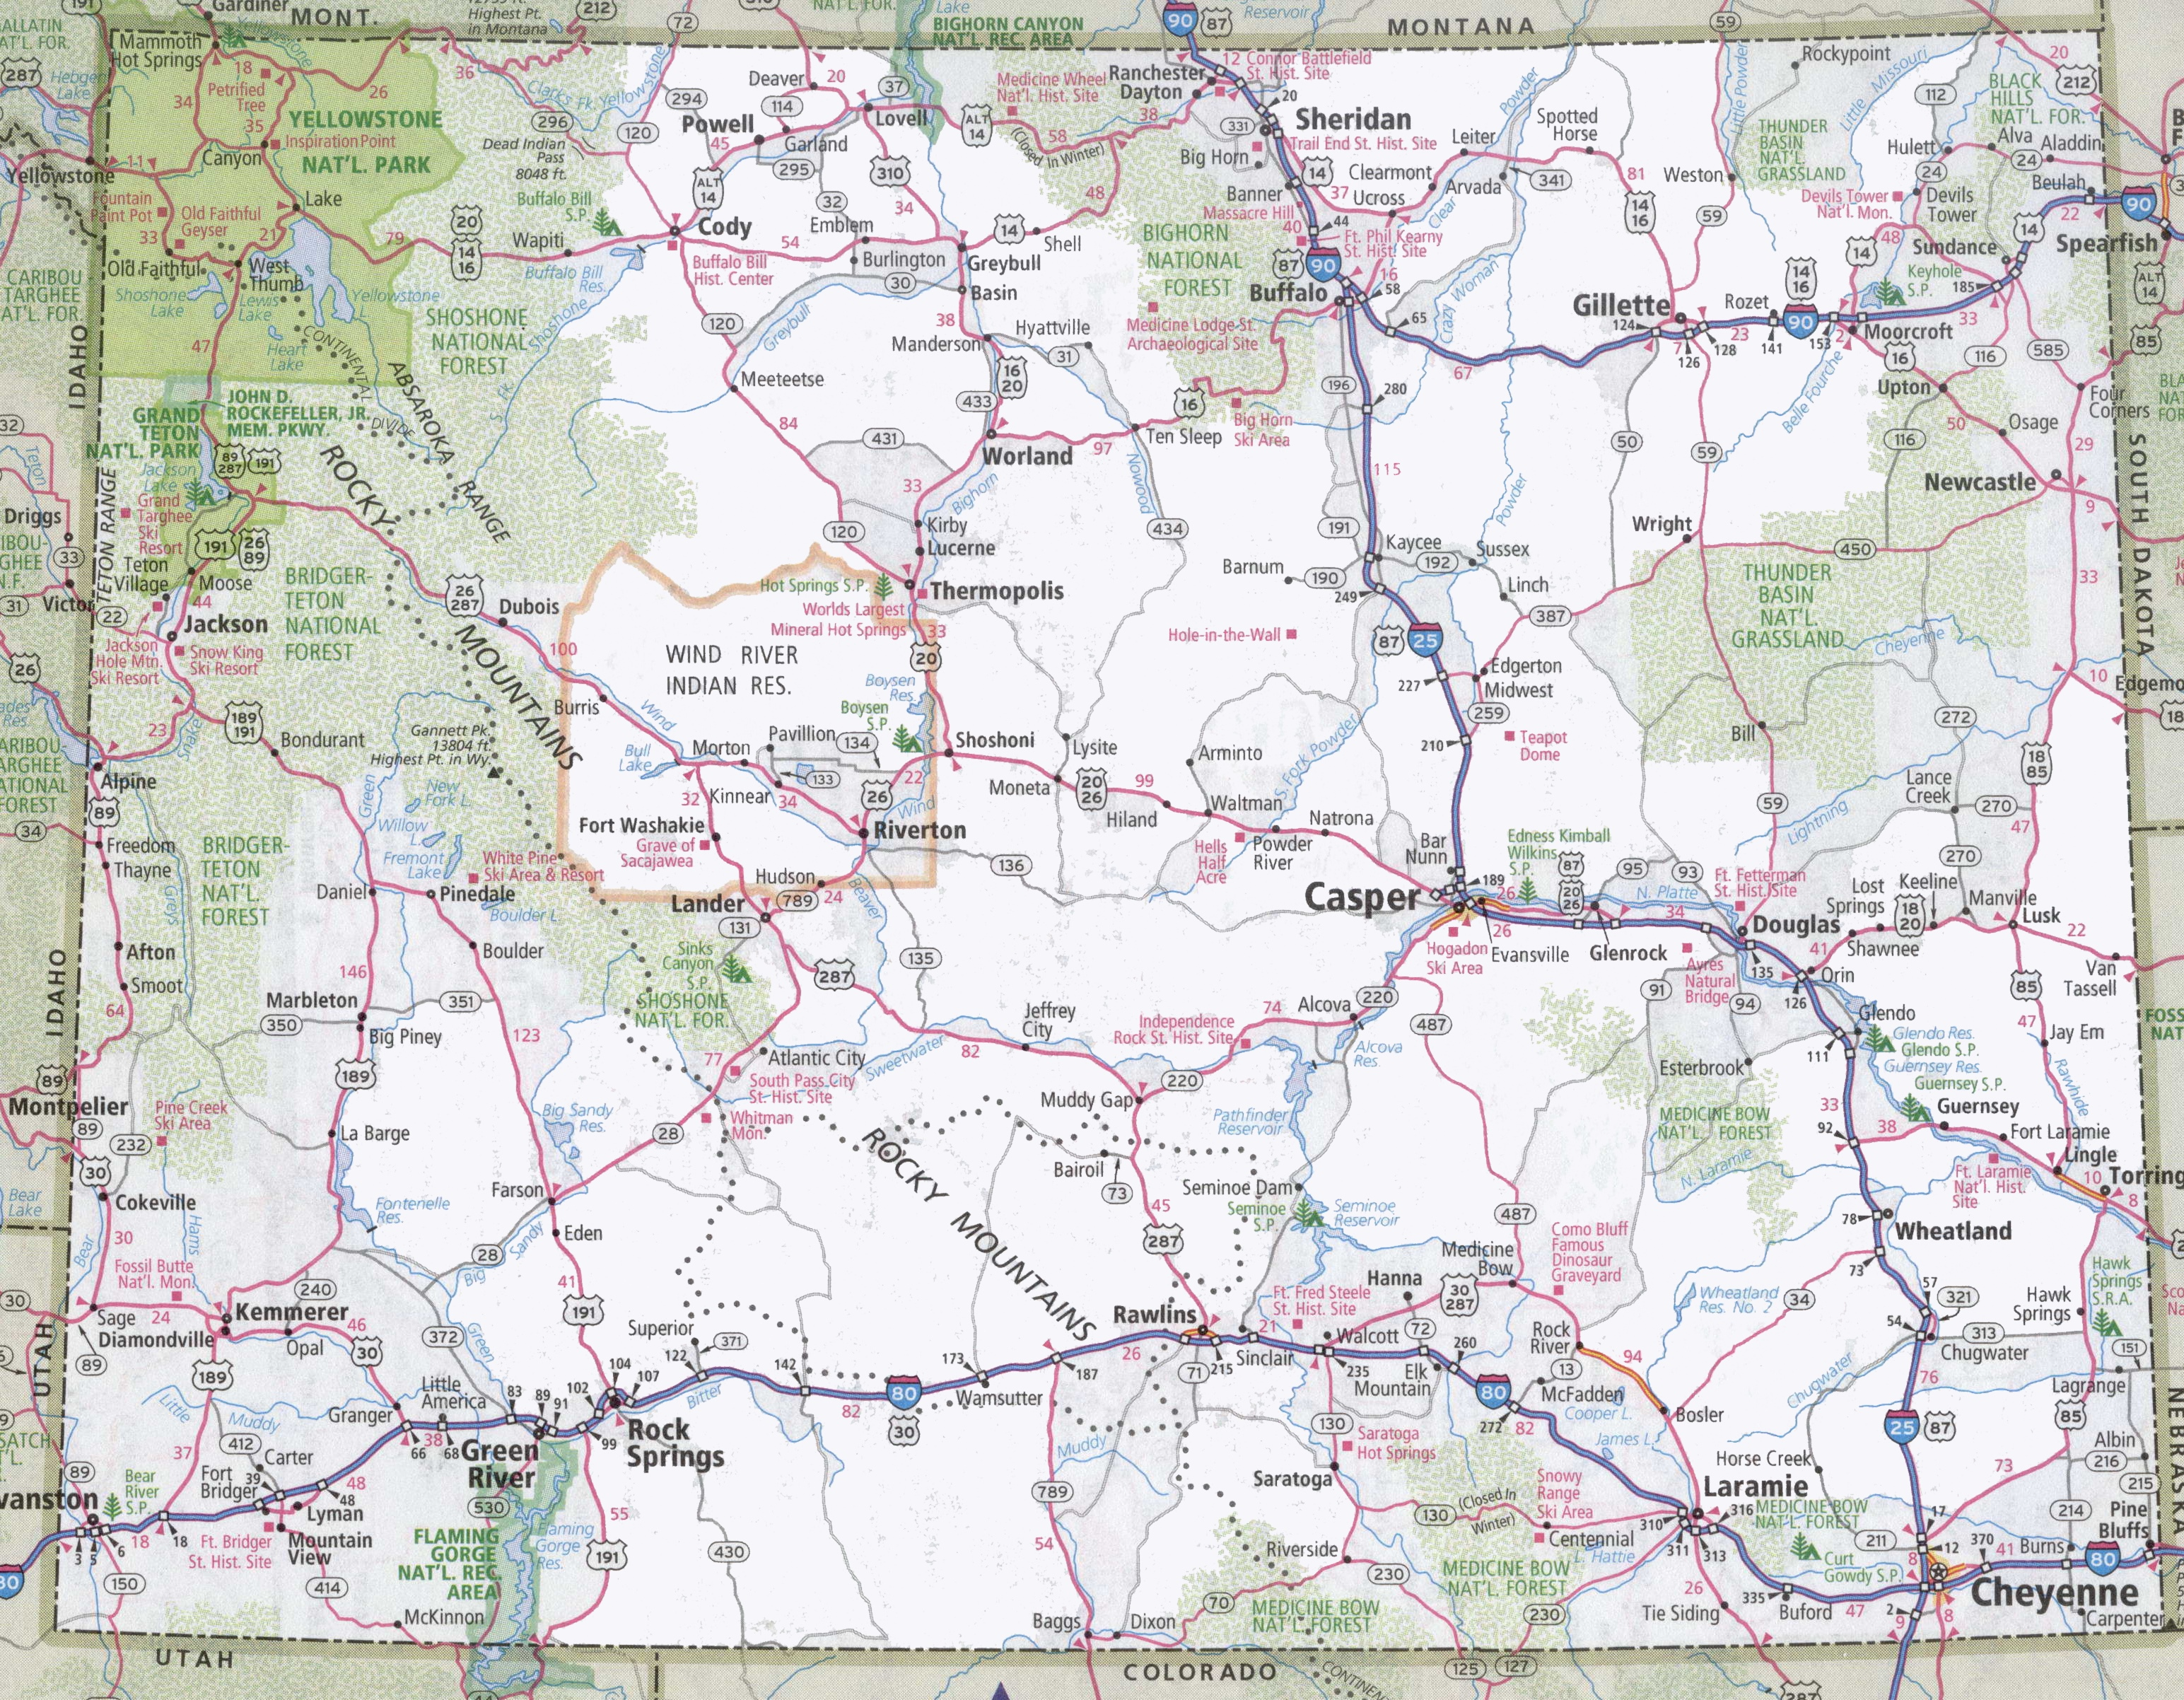 Download A Wyoming State Road Map Pdf – tendeonline.info